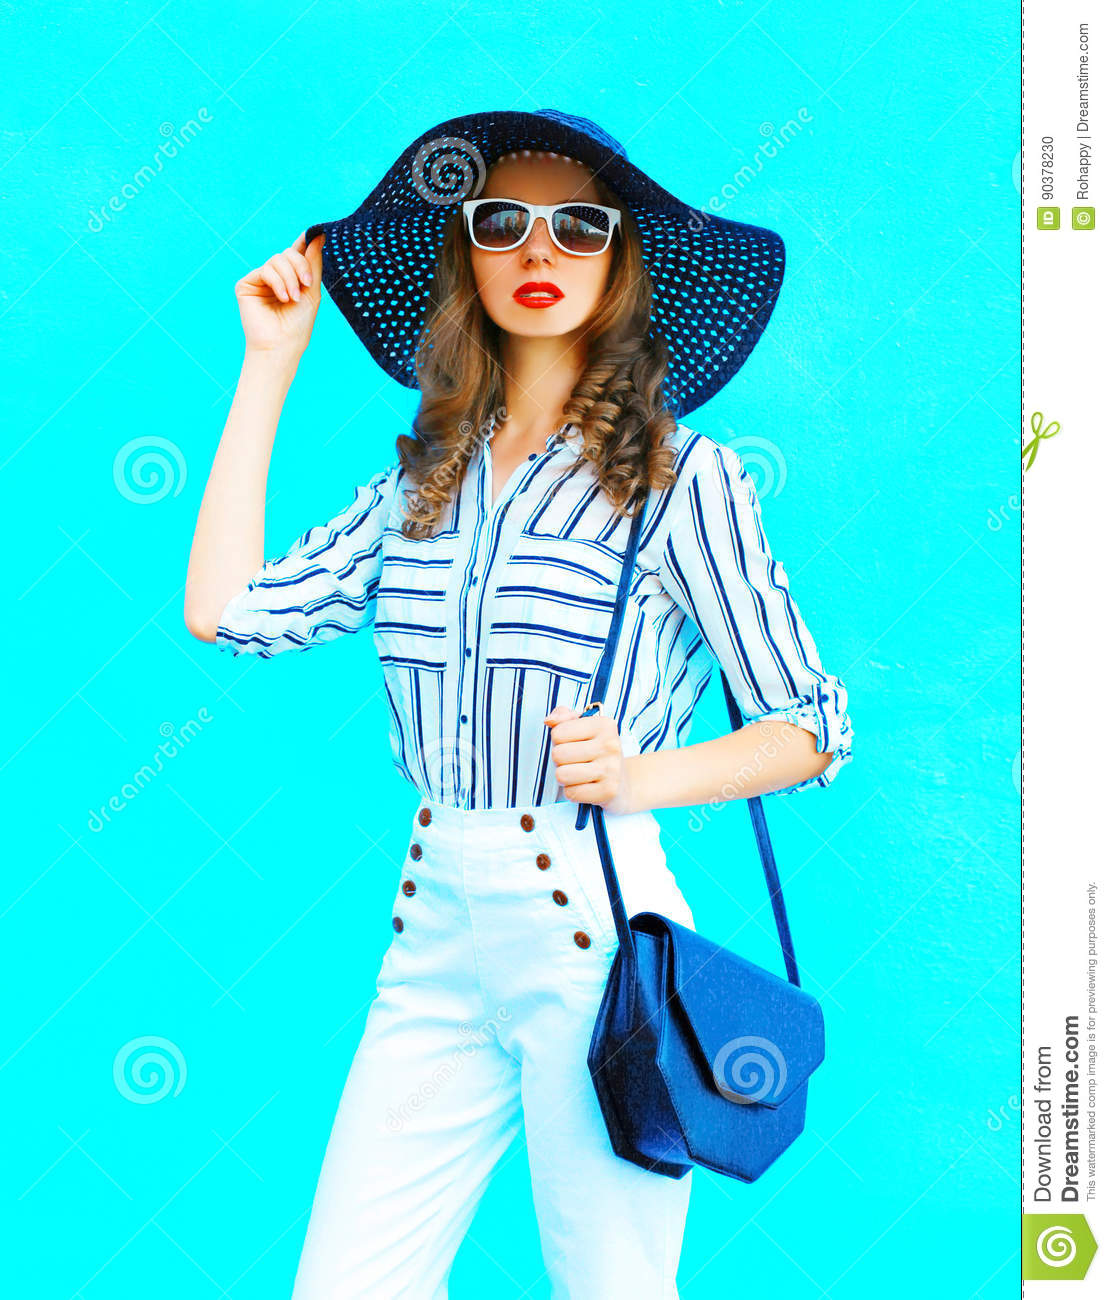 Fashion portrait young woman wearing a straw hat, white pants and handbag clutch over colorful blue background posing in city